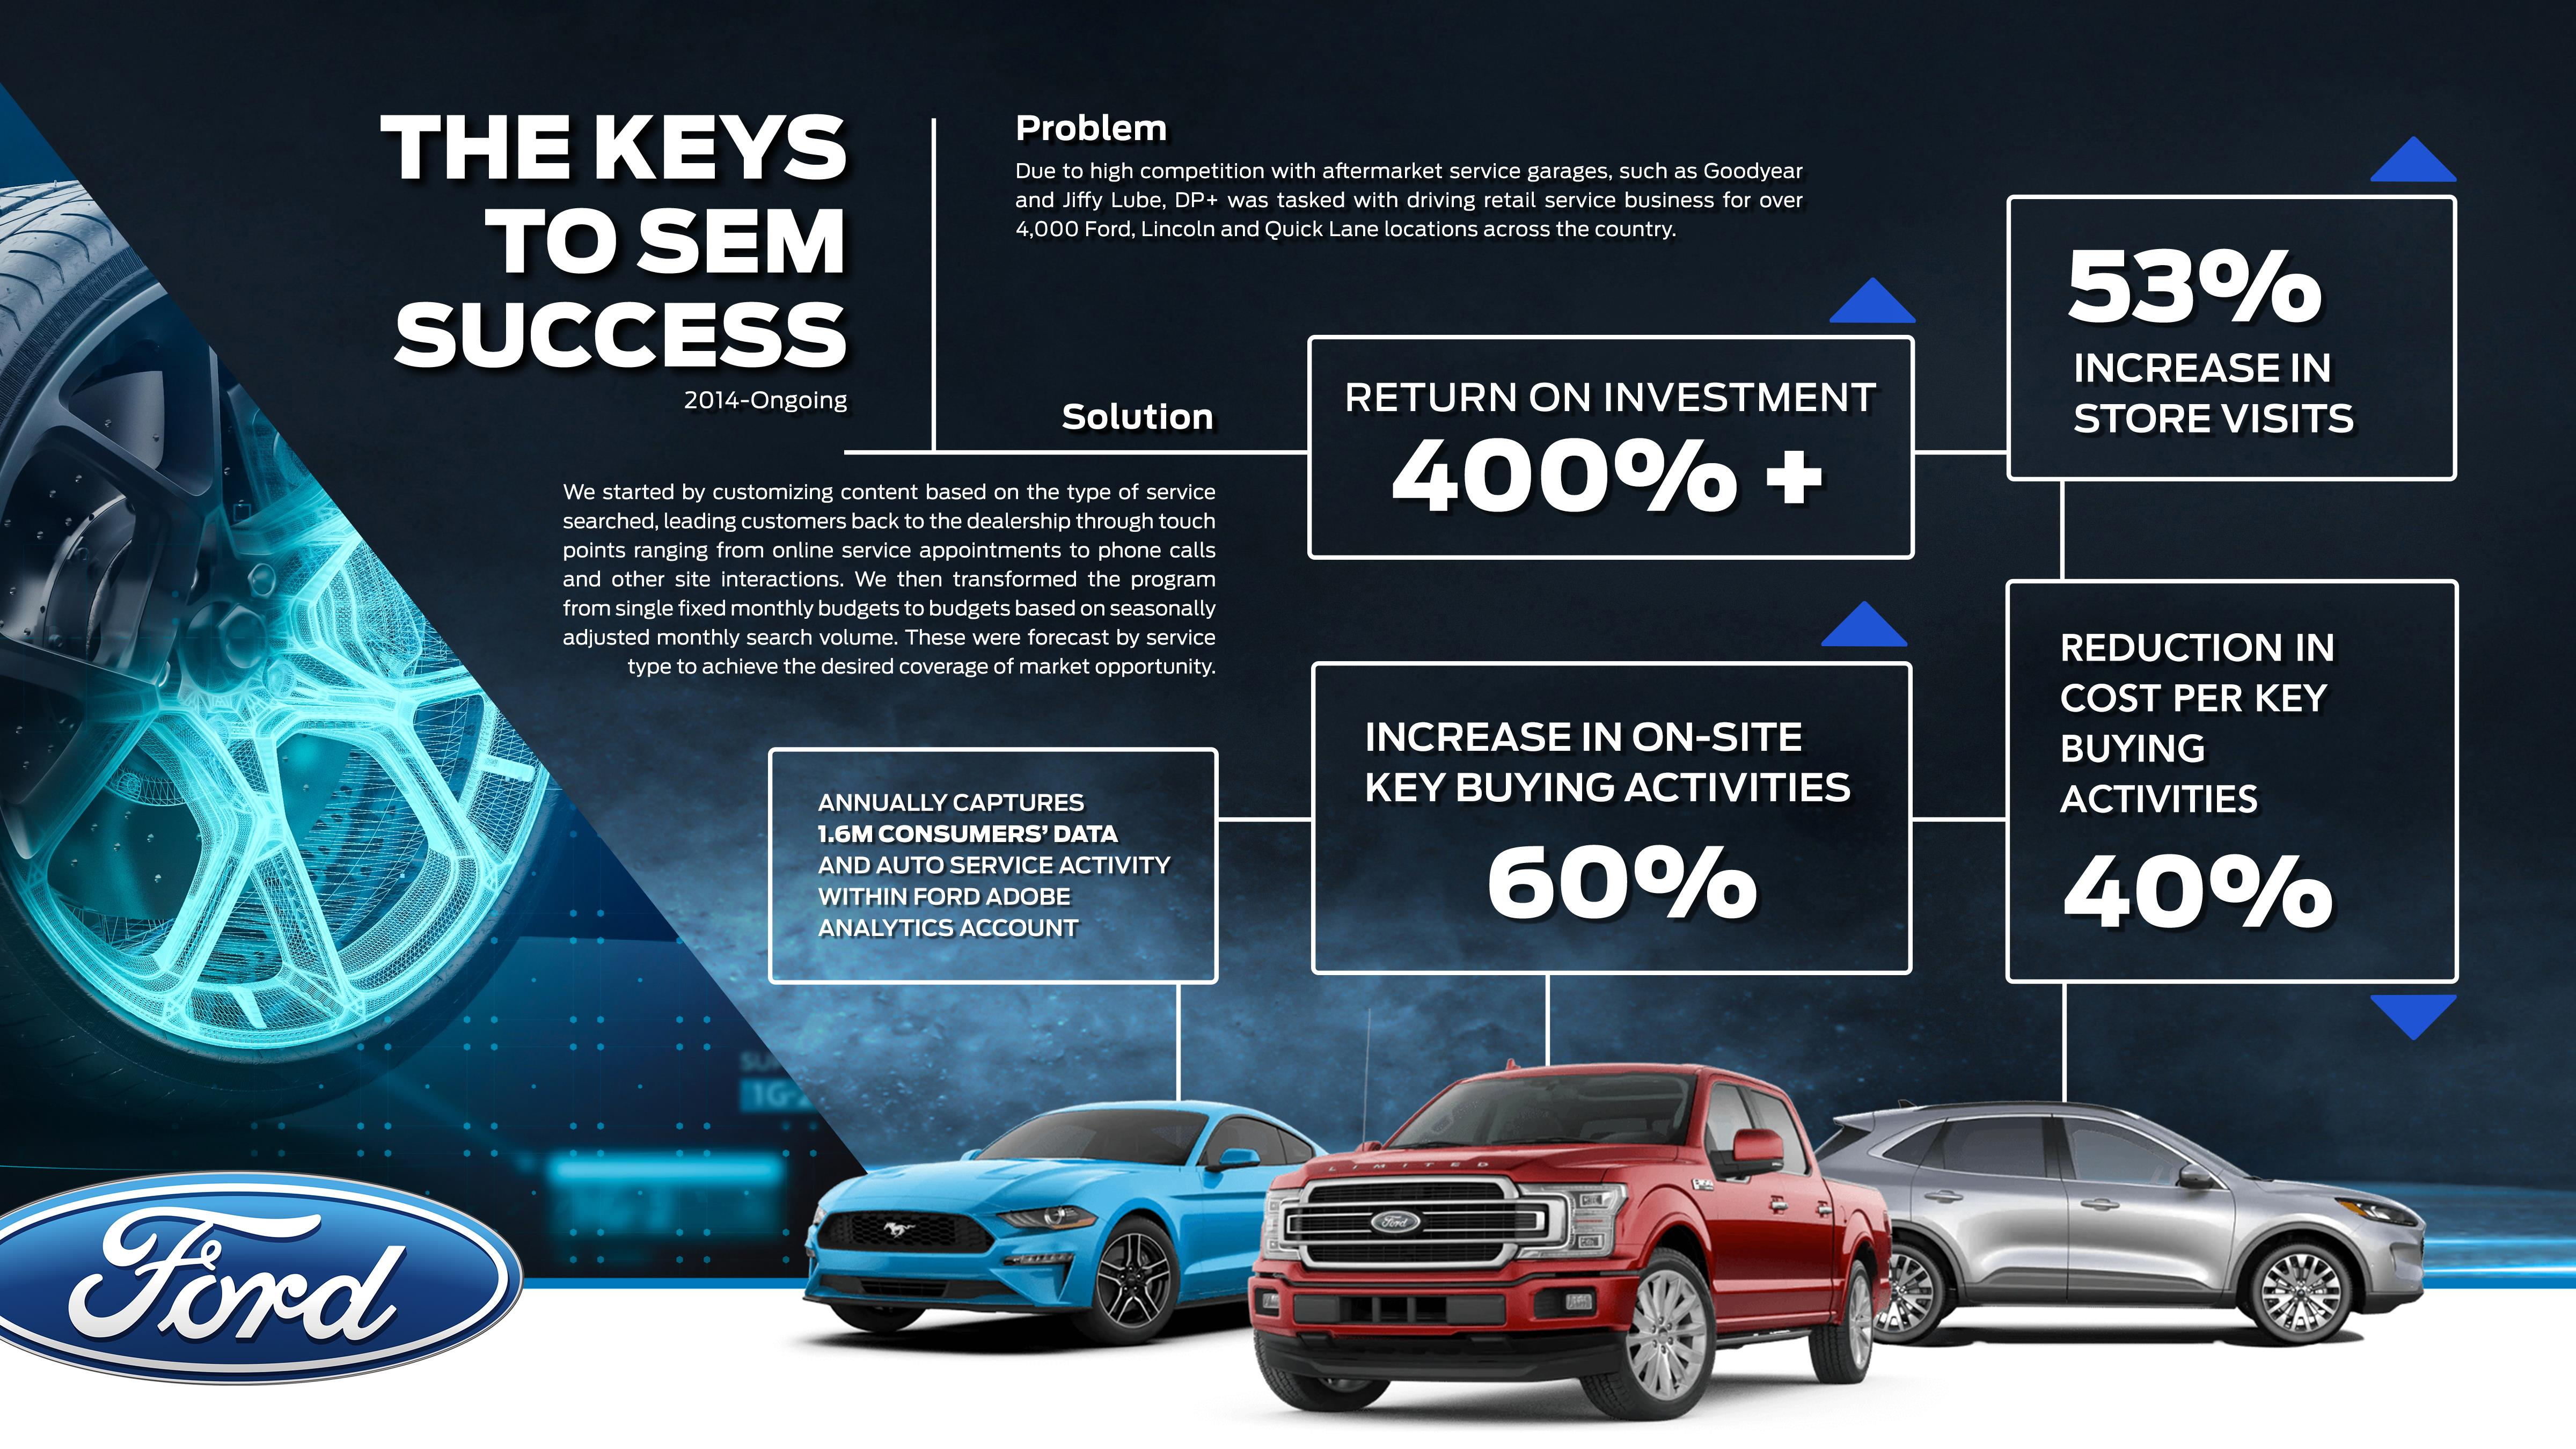 FORD  - The Keys to SEM Success